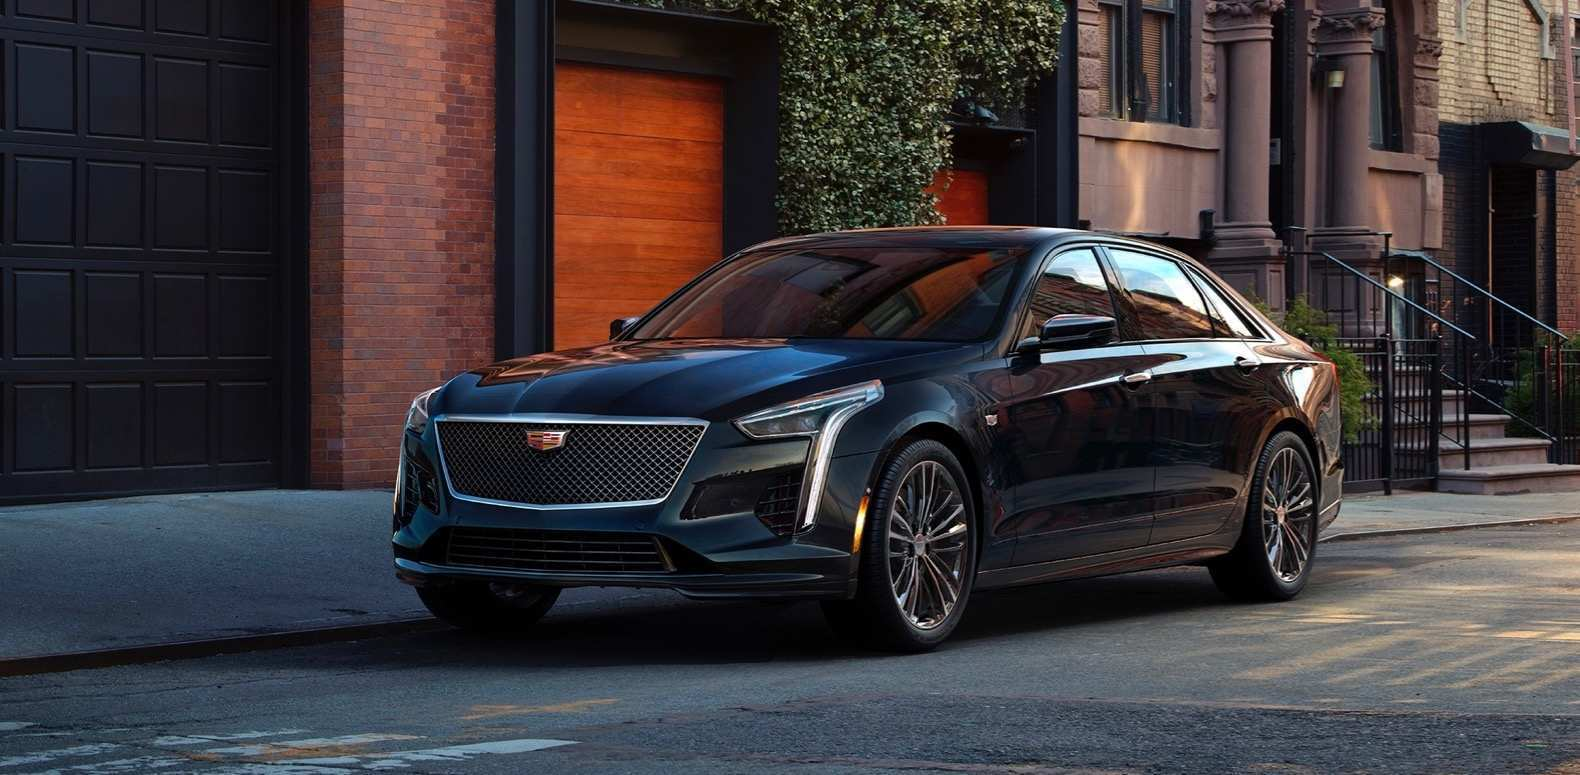 42 Best Review 2019 Cadillac Reviews Specs Spy Shoot for 2019 Cadillac Reviews Specs